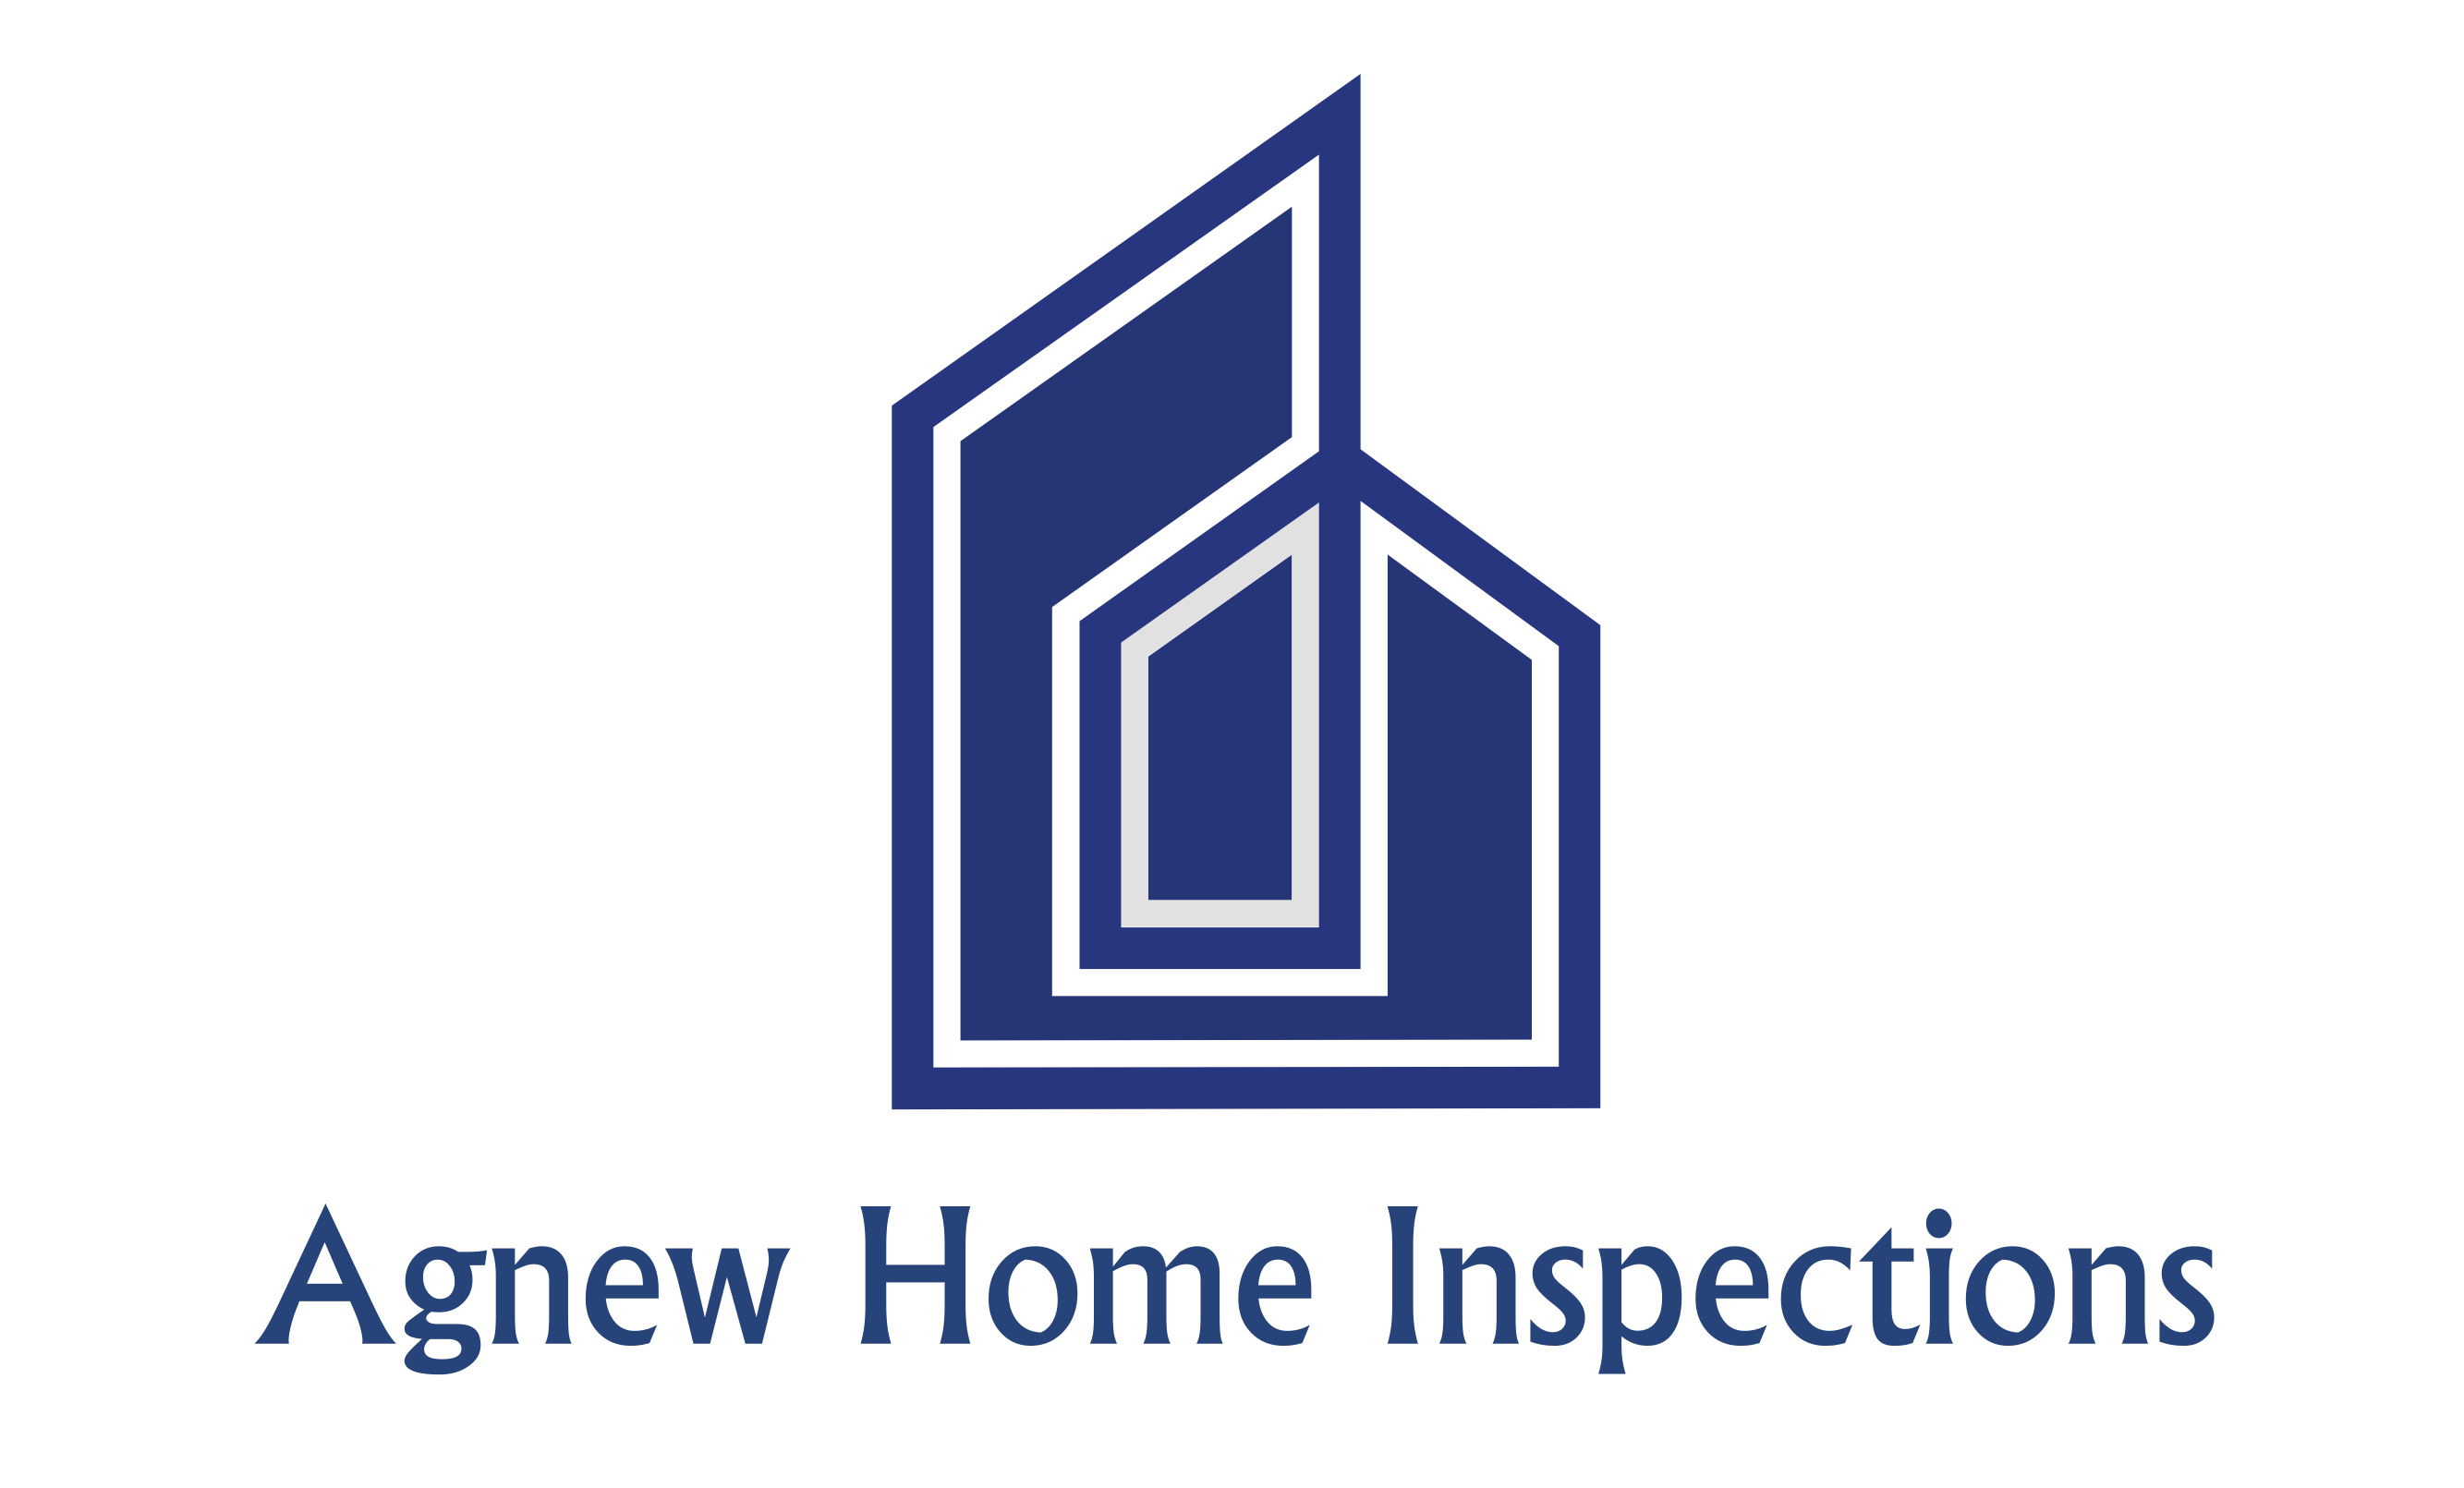 Winston-Salem Home Inspections